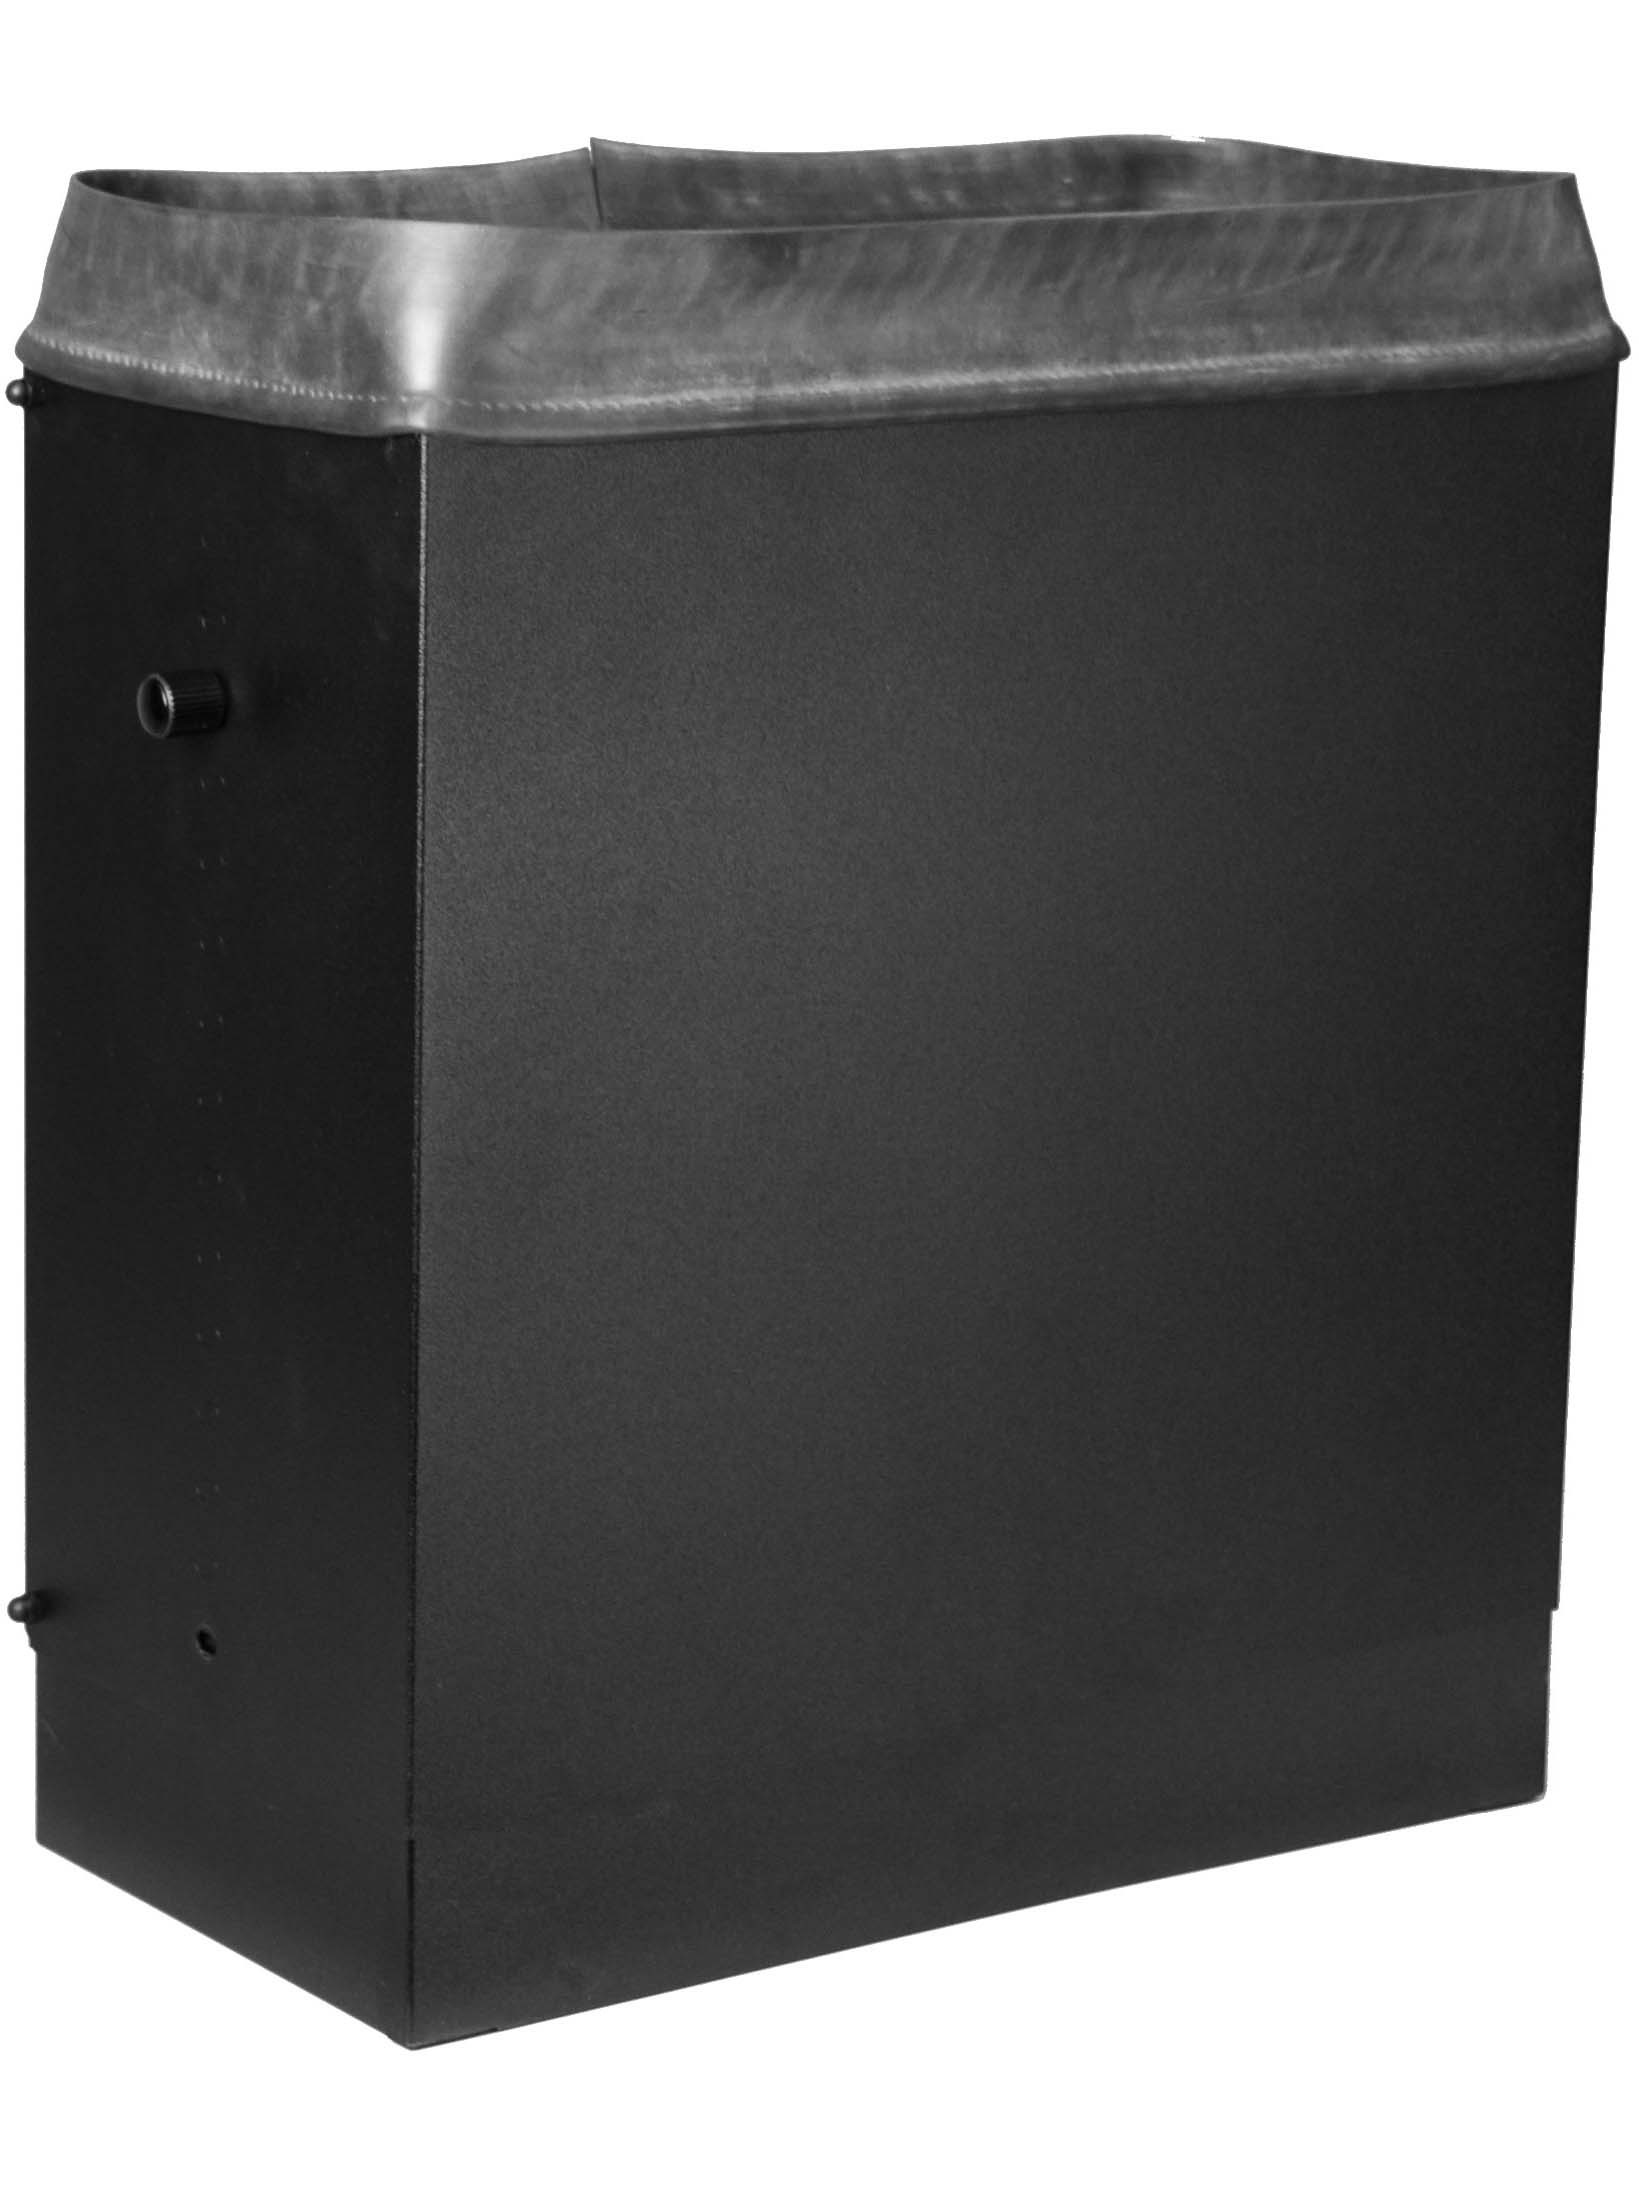 Exhaust chimney for 48″D enclosure (18″-32″)